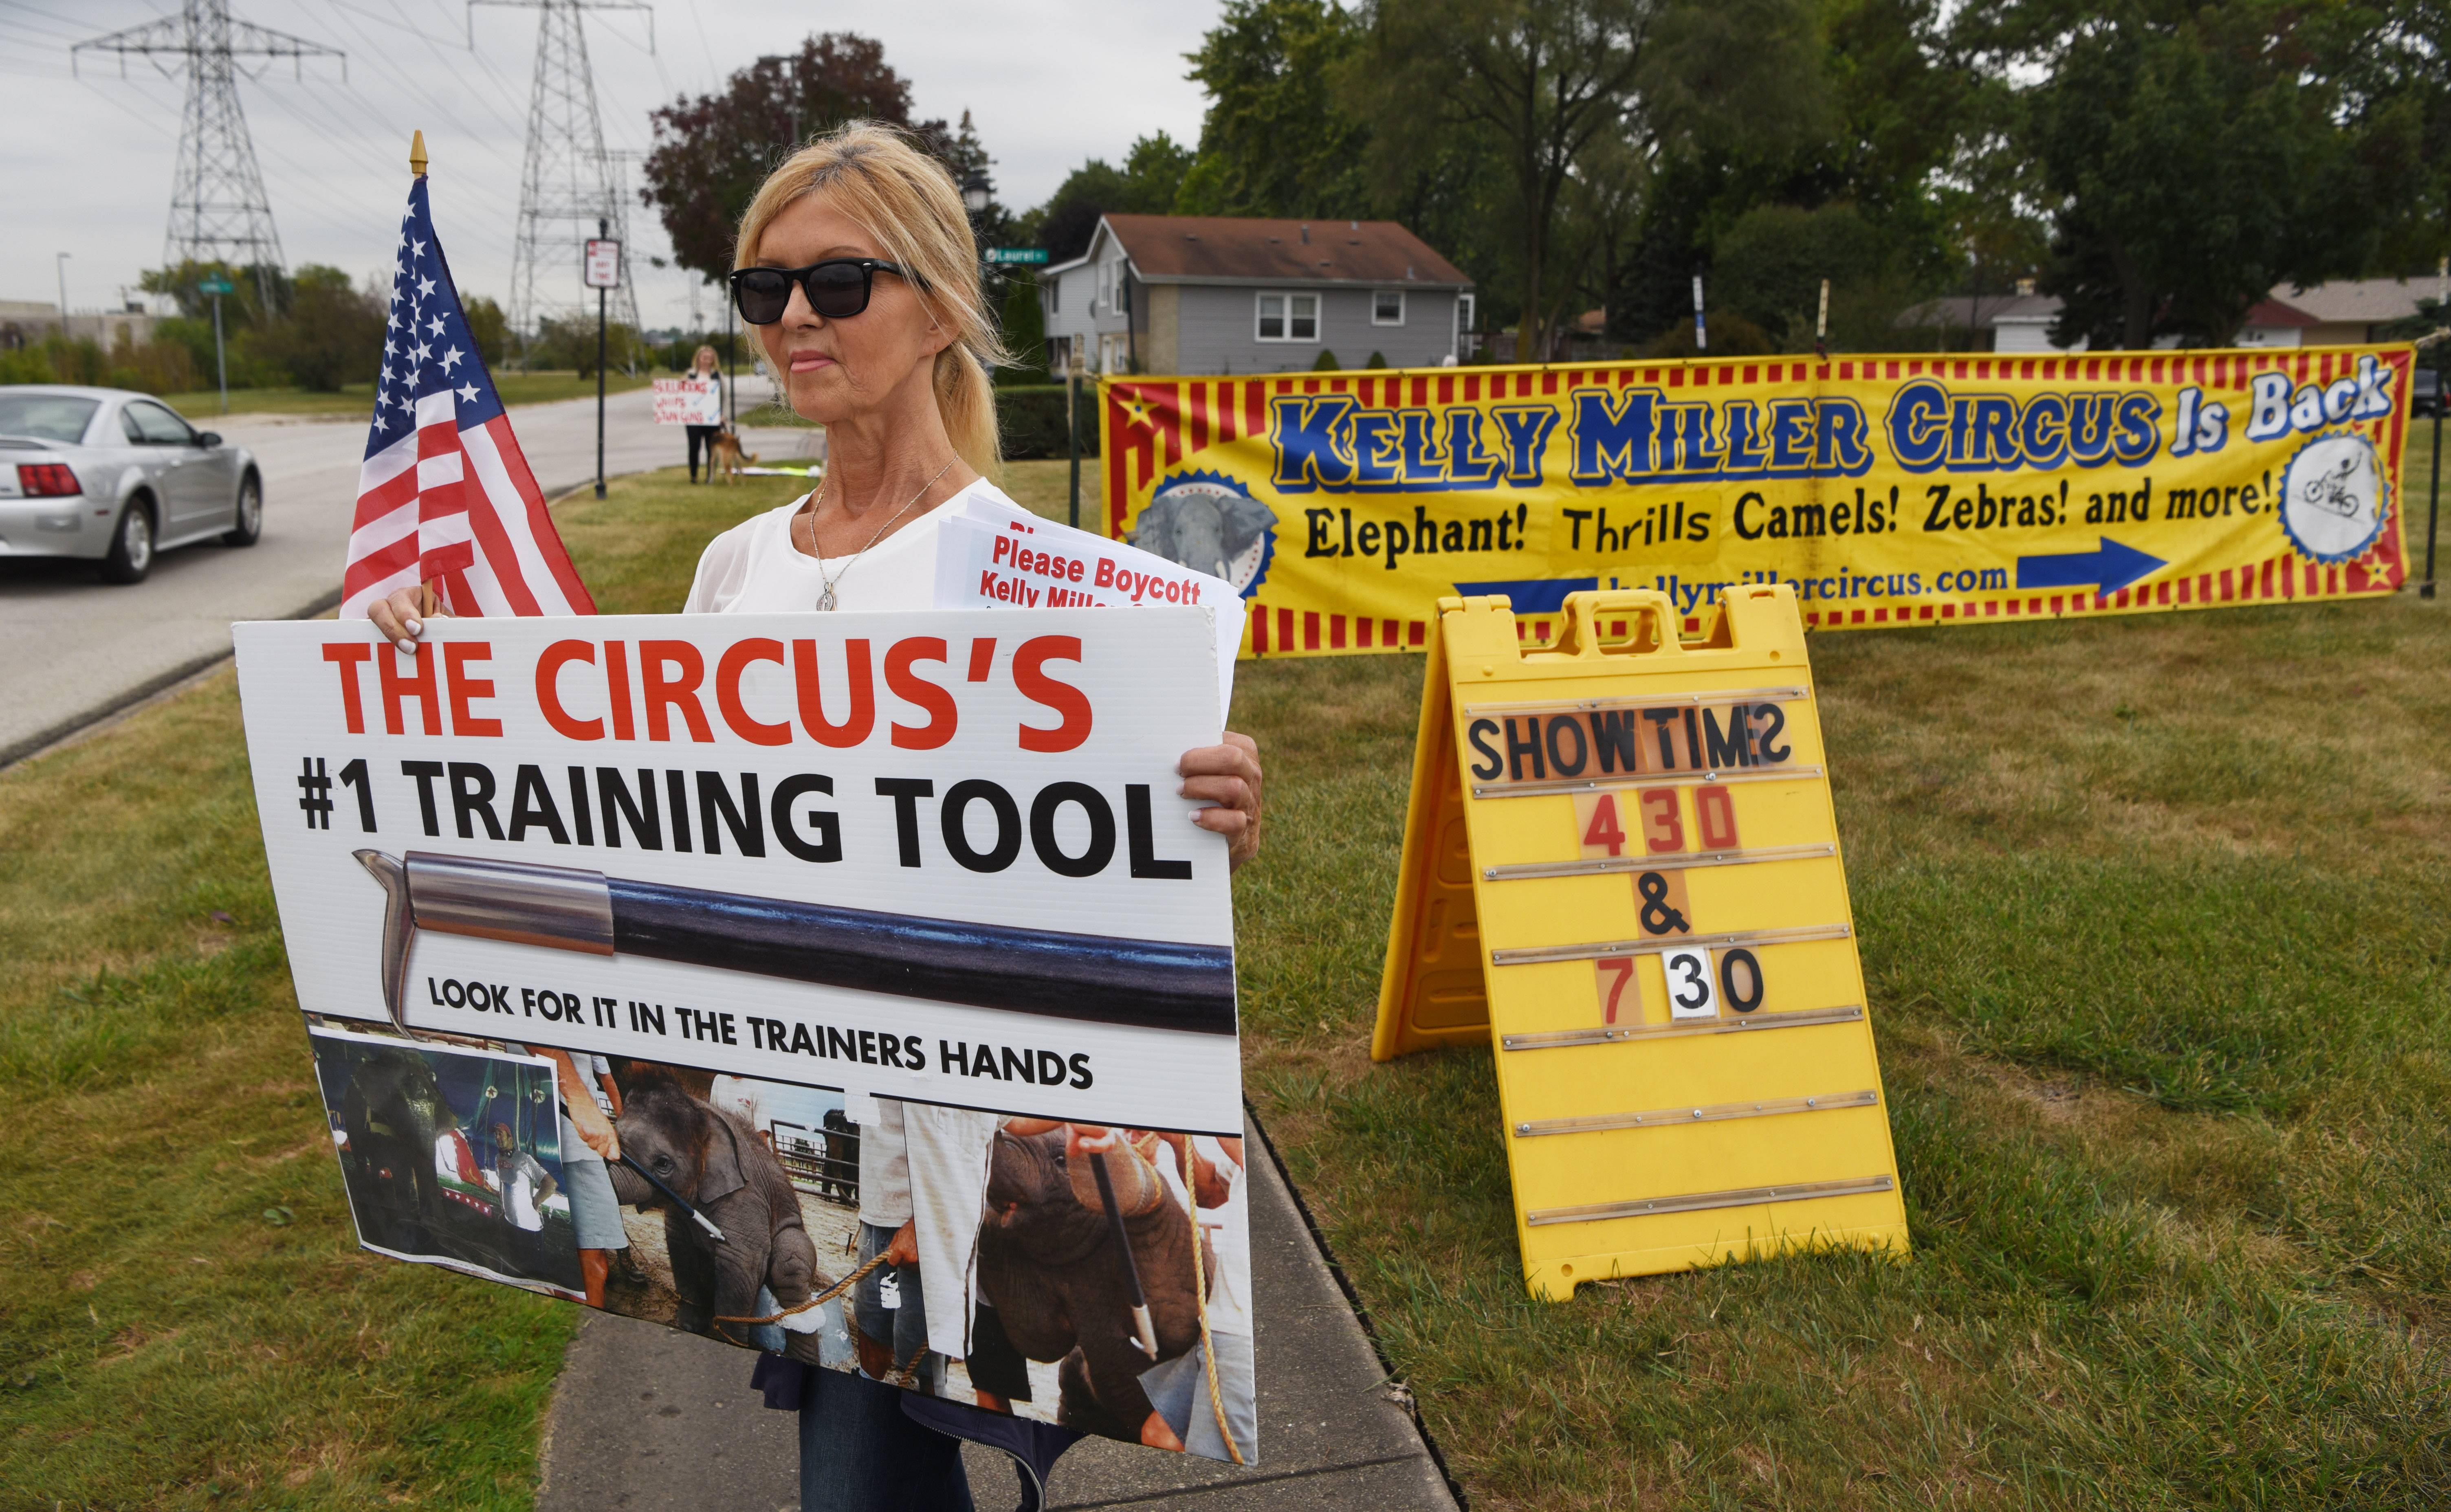 Karen Stramaglio is one of about a dozen people protesting the use of elephants and other animals at the Kelly Miller Circus in Elk Grove Village Wednesday afternoon.